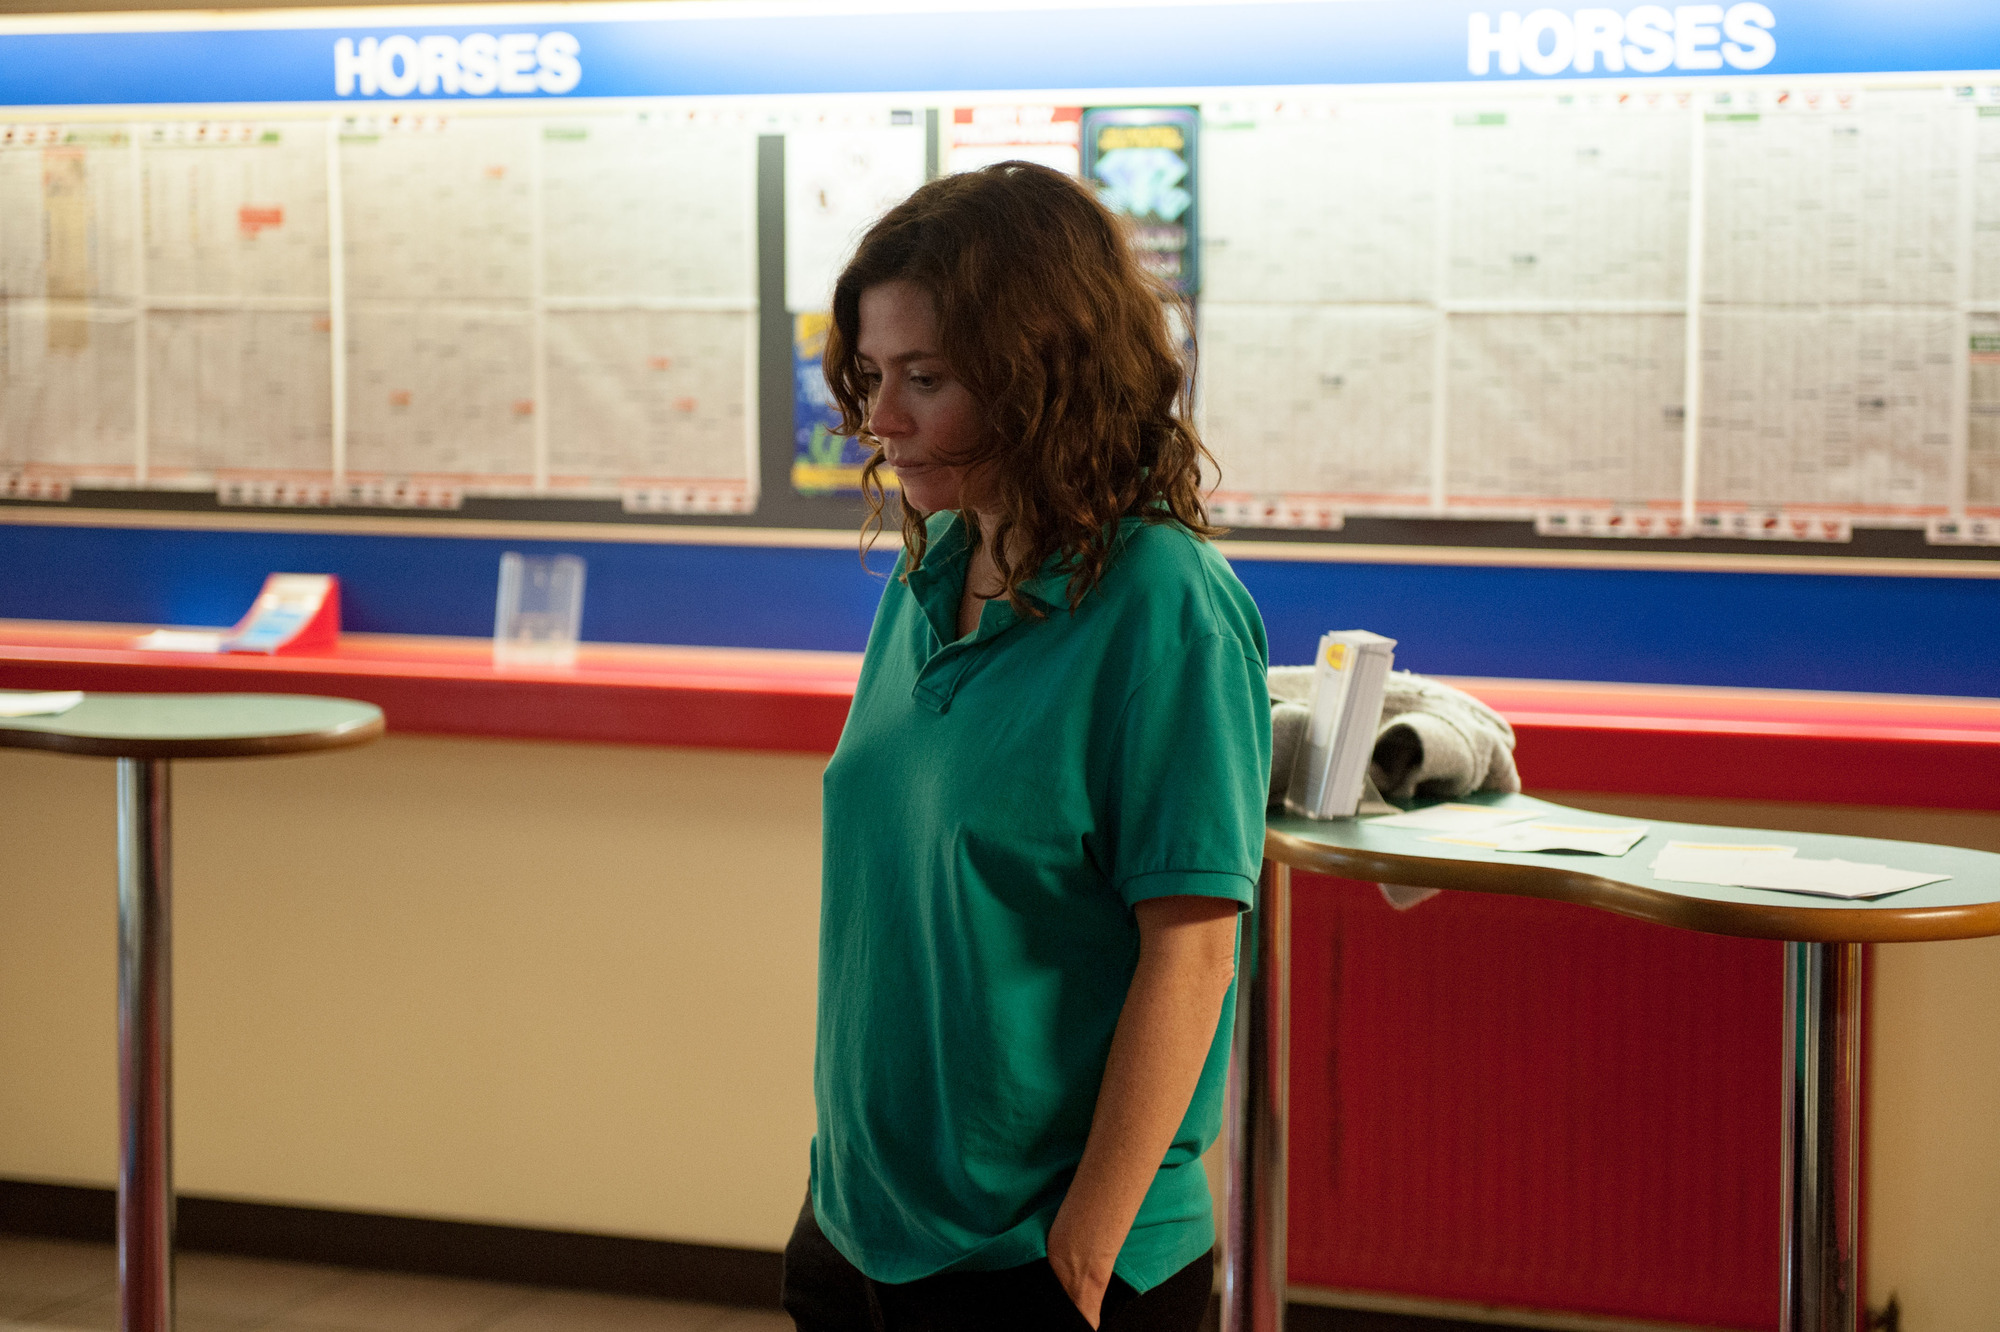 Broken review: Anna Friel and Sean Bean are a dream team in Jimmy McGovern's bleak new drama